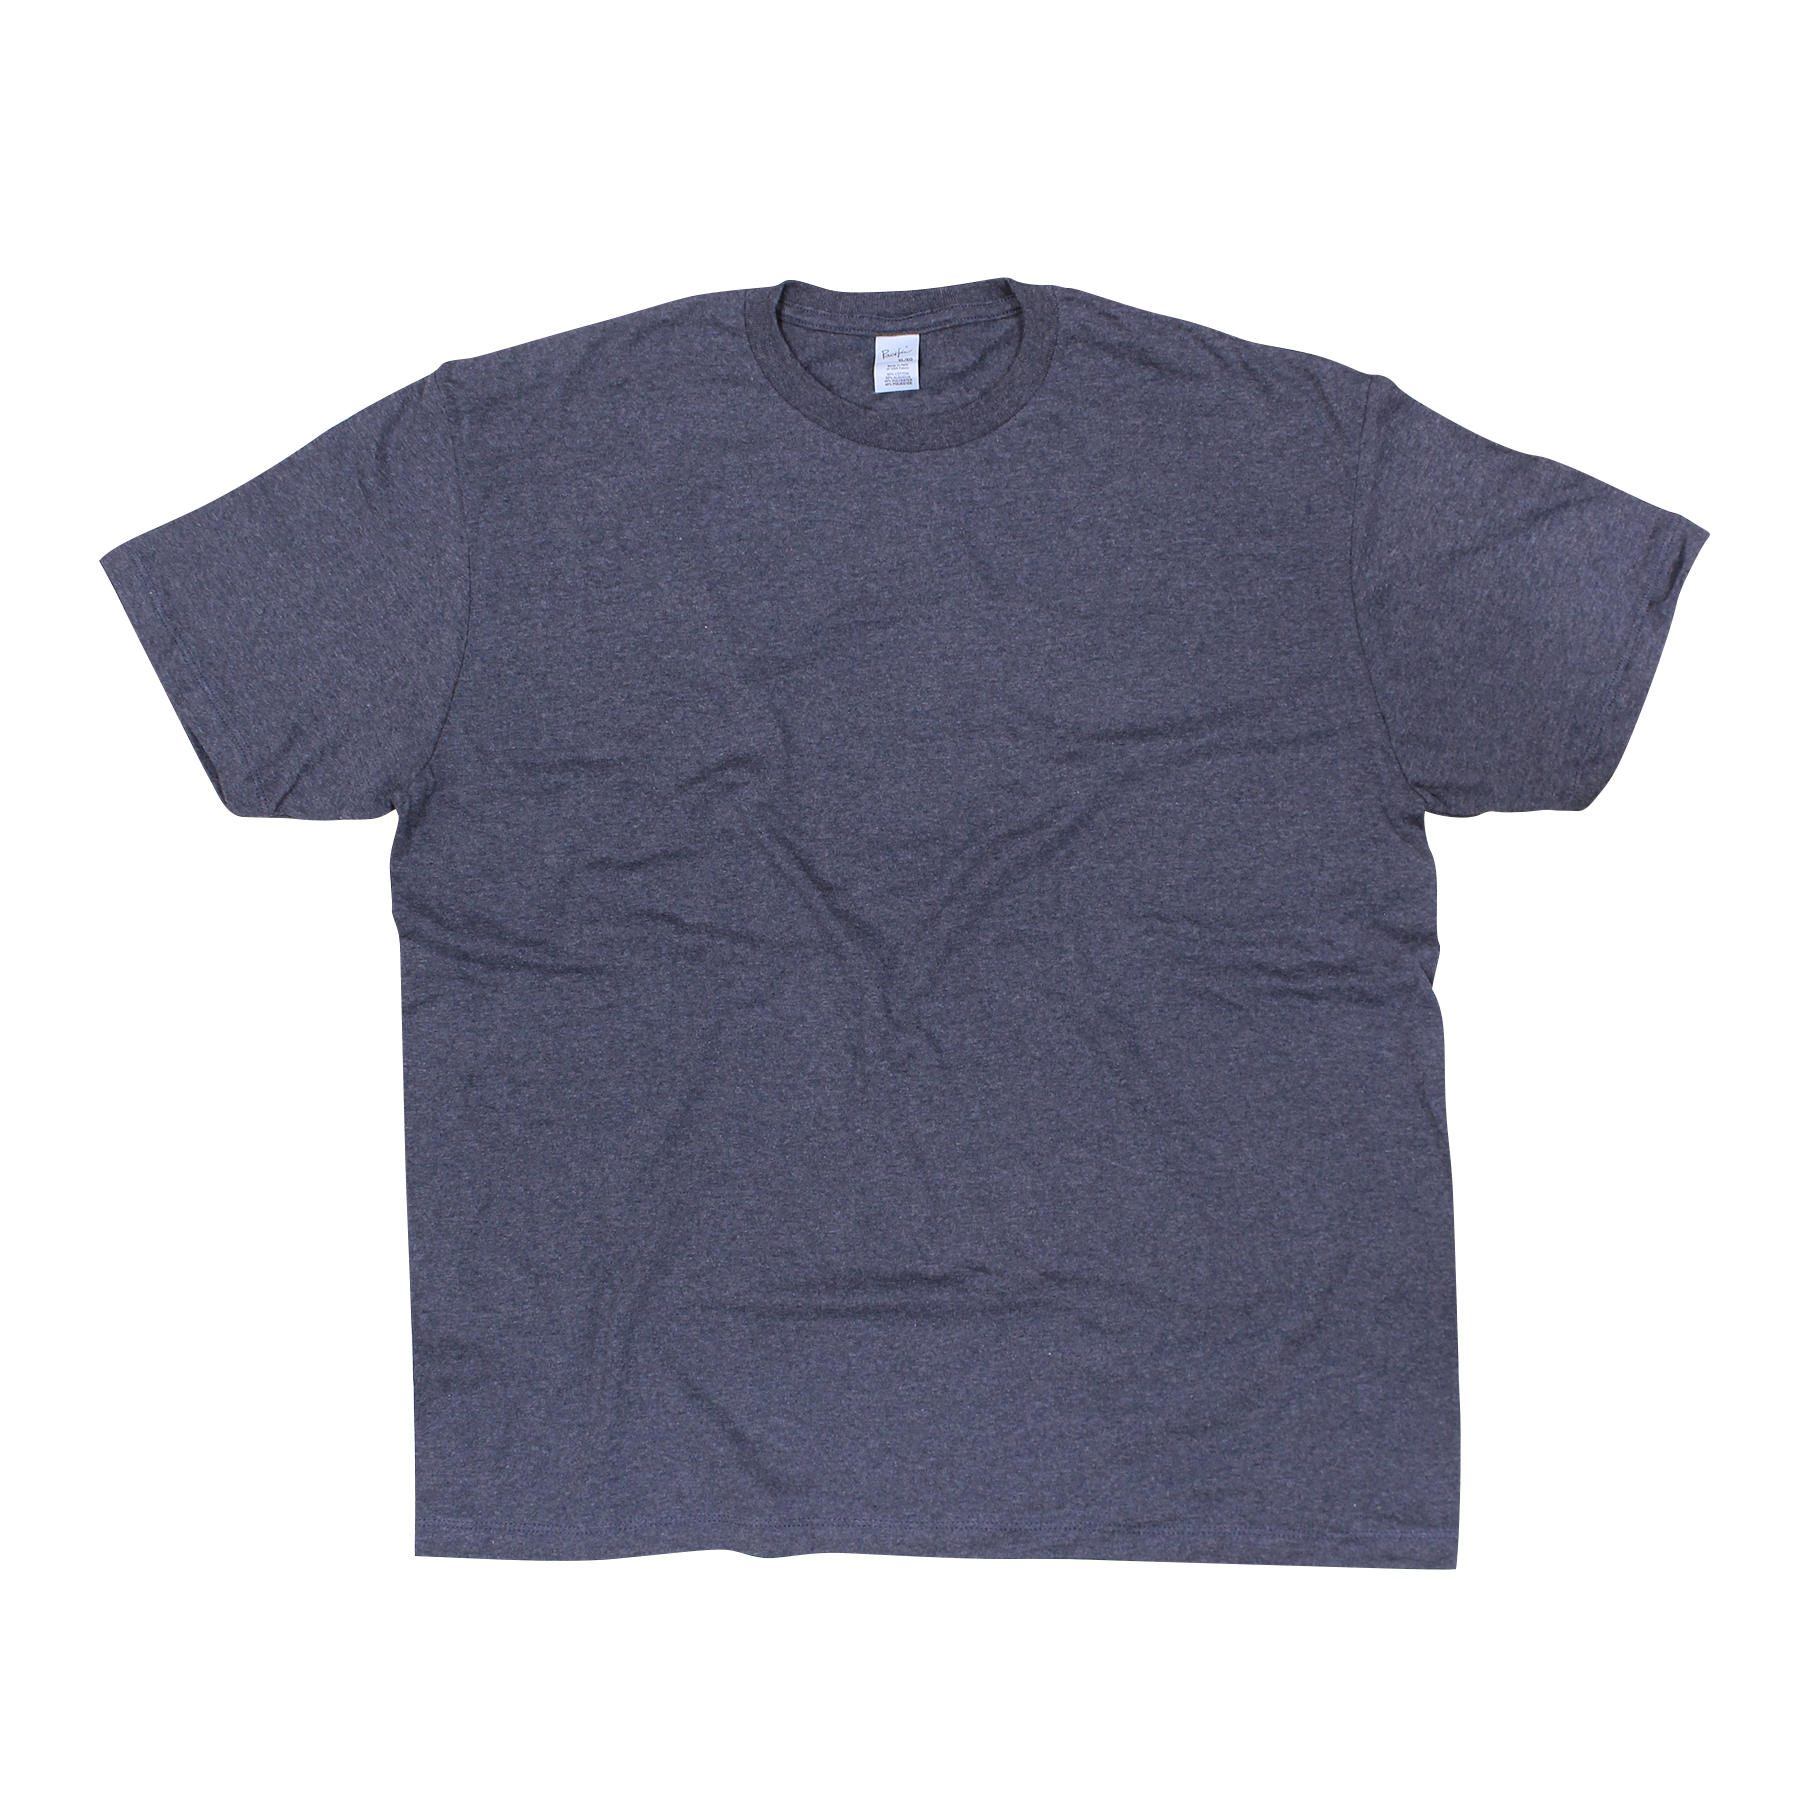 Pacific Navy Heather - XL - Men's Clearance